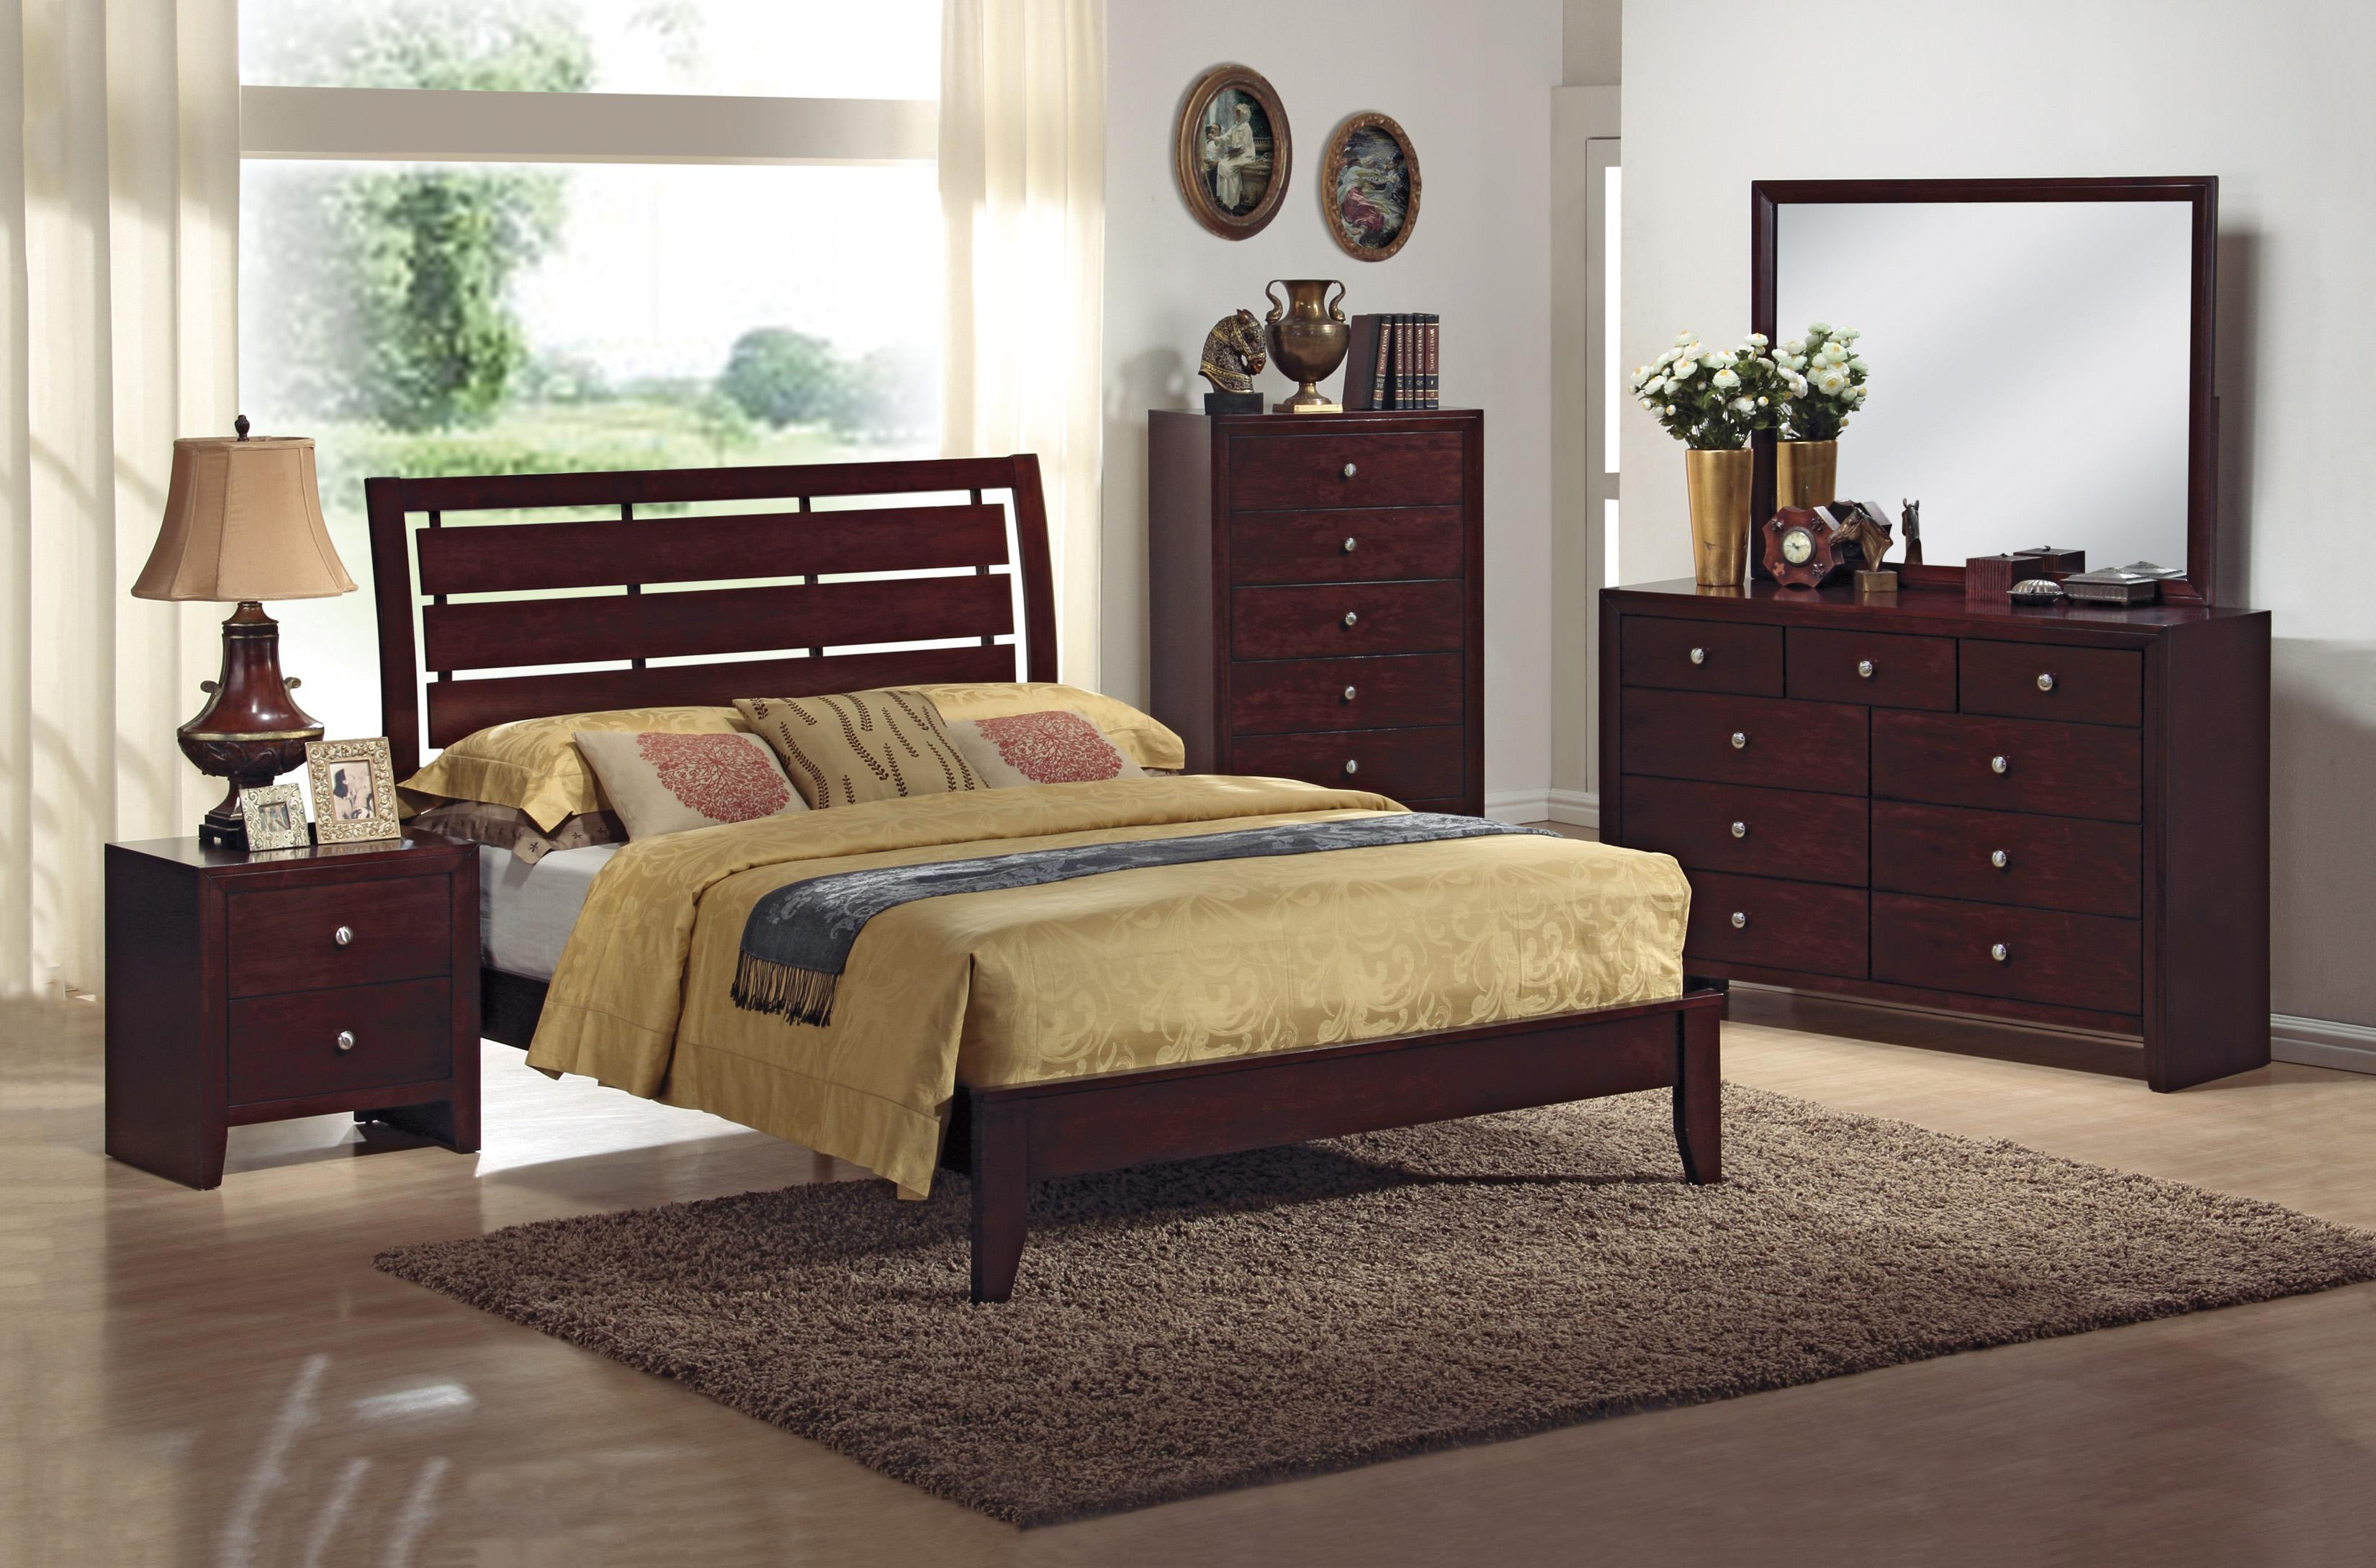 Crown Mark Evan 4 Piece Bedroom Group - Item Number: B4700 Q 4 Piece